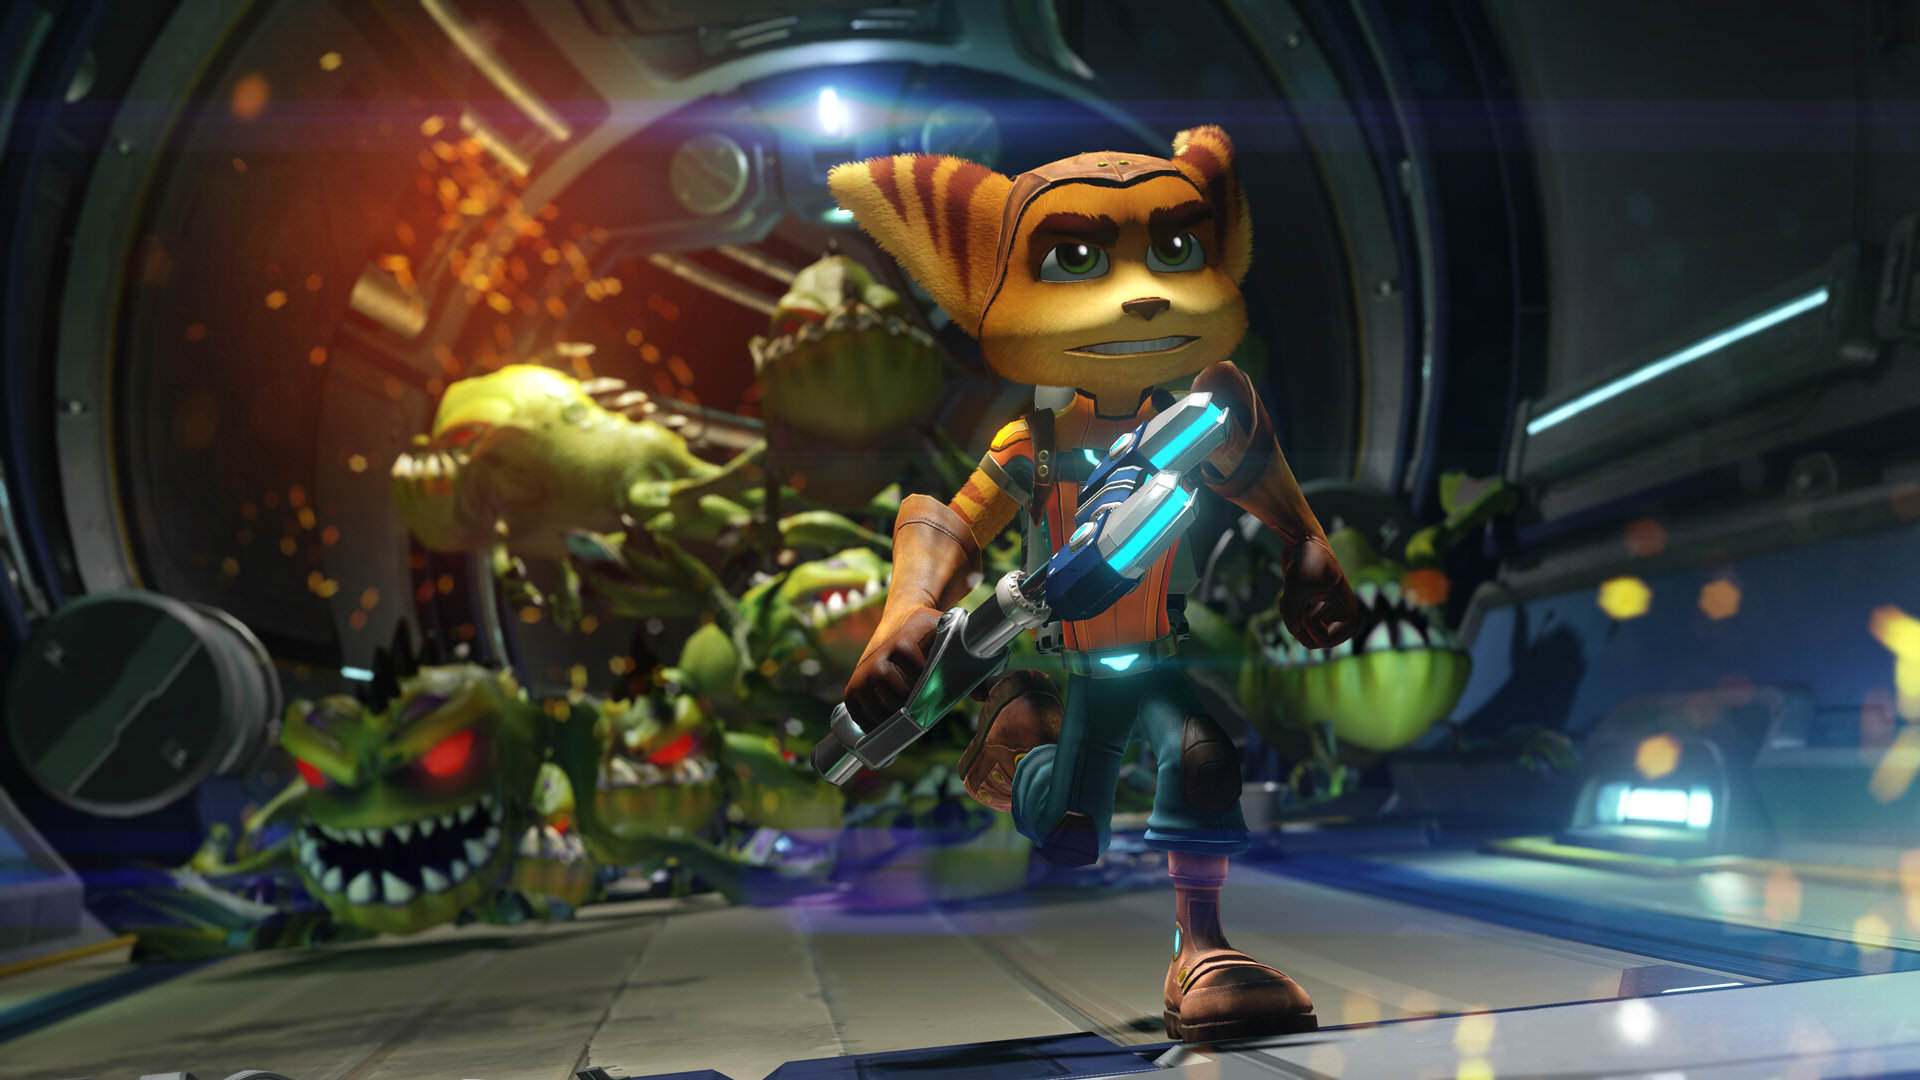 4623709 3716010598 ratchet and clank screen 05 ps4 eu 02jun15 Ratchet & Clank Gets Last Minute Patch To Block Spoilers